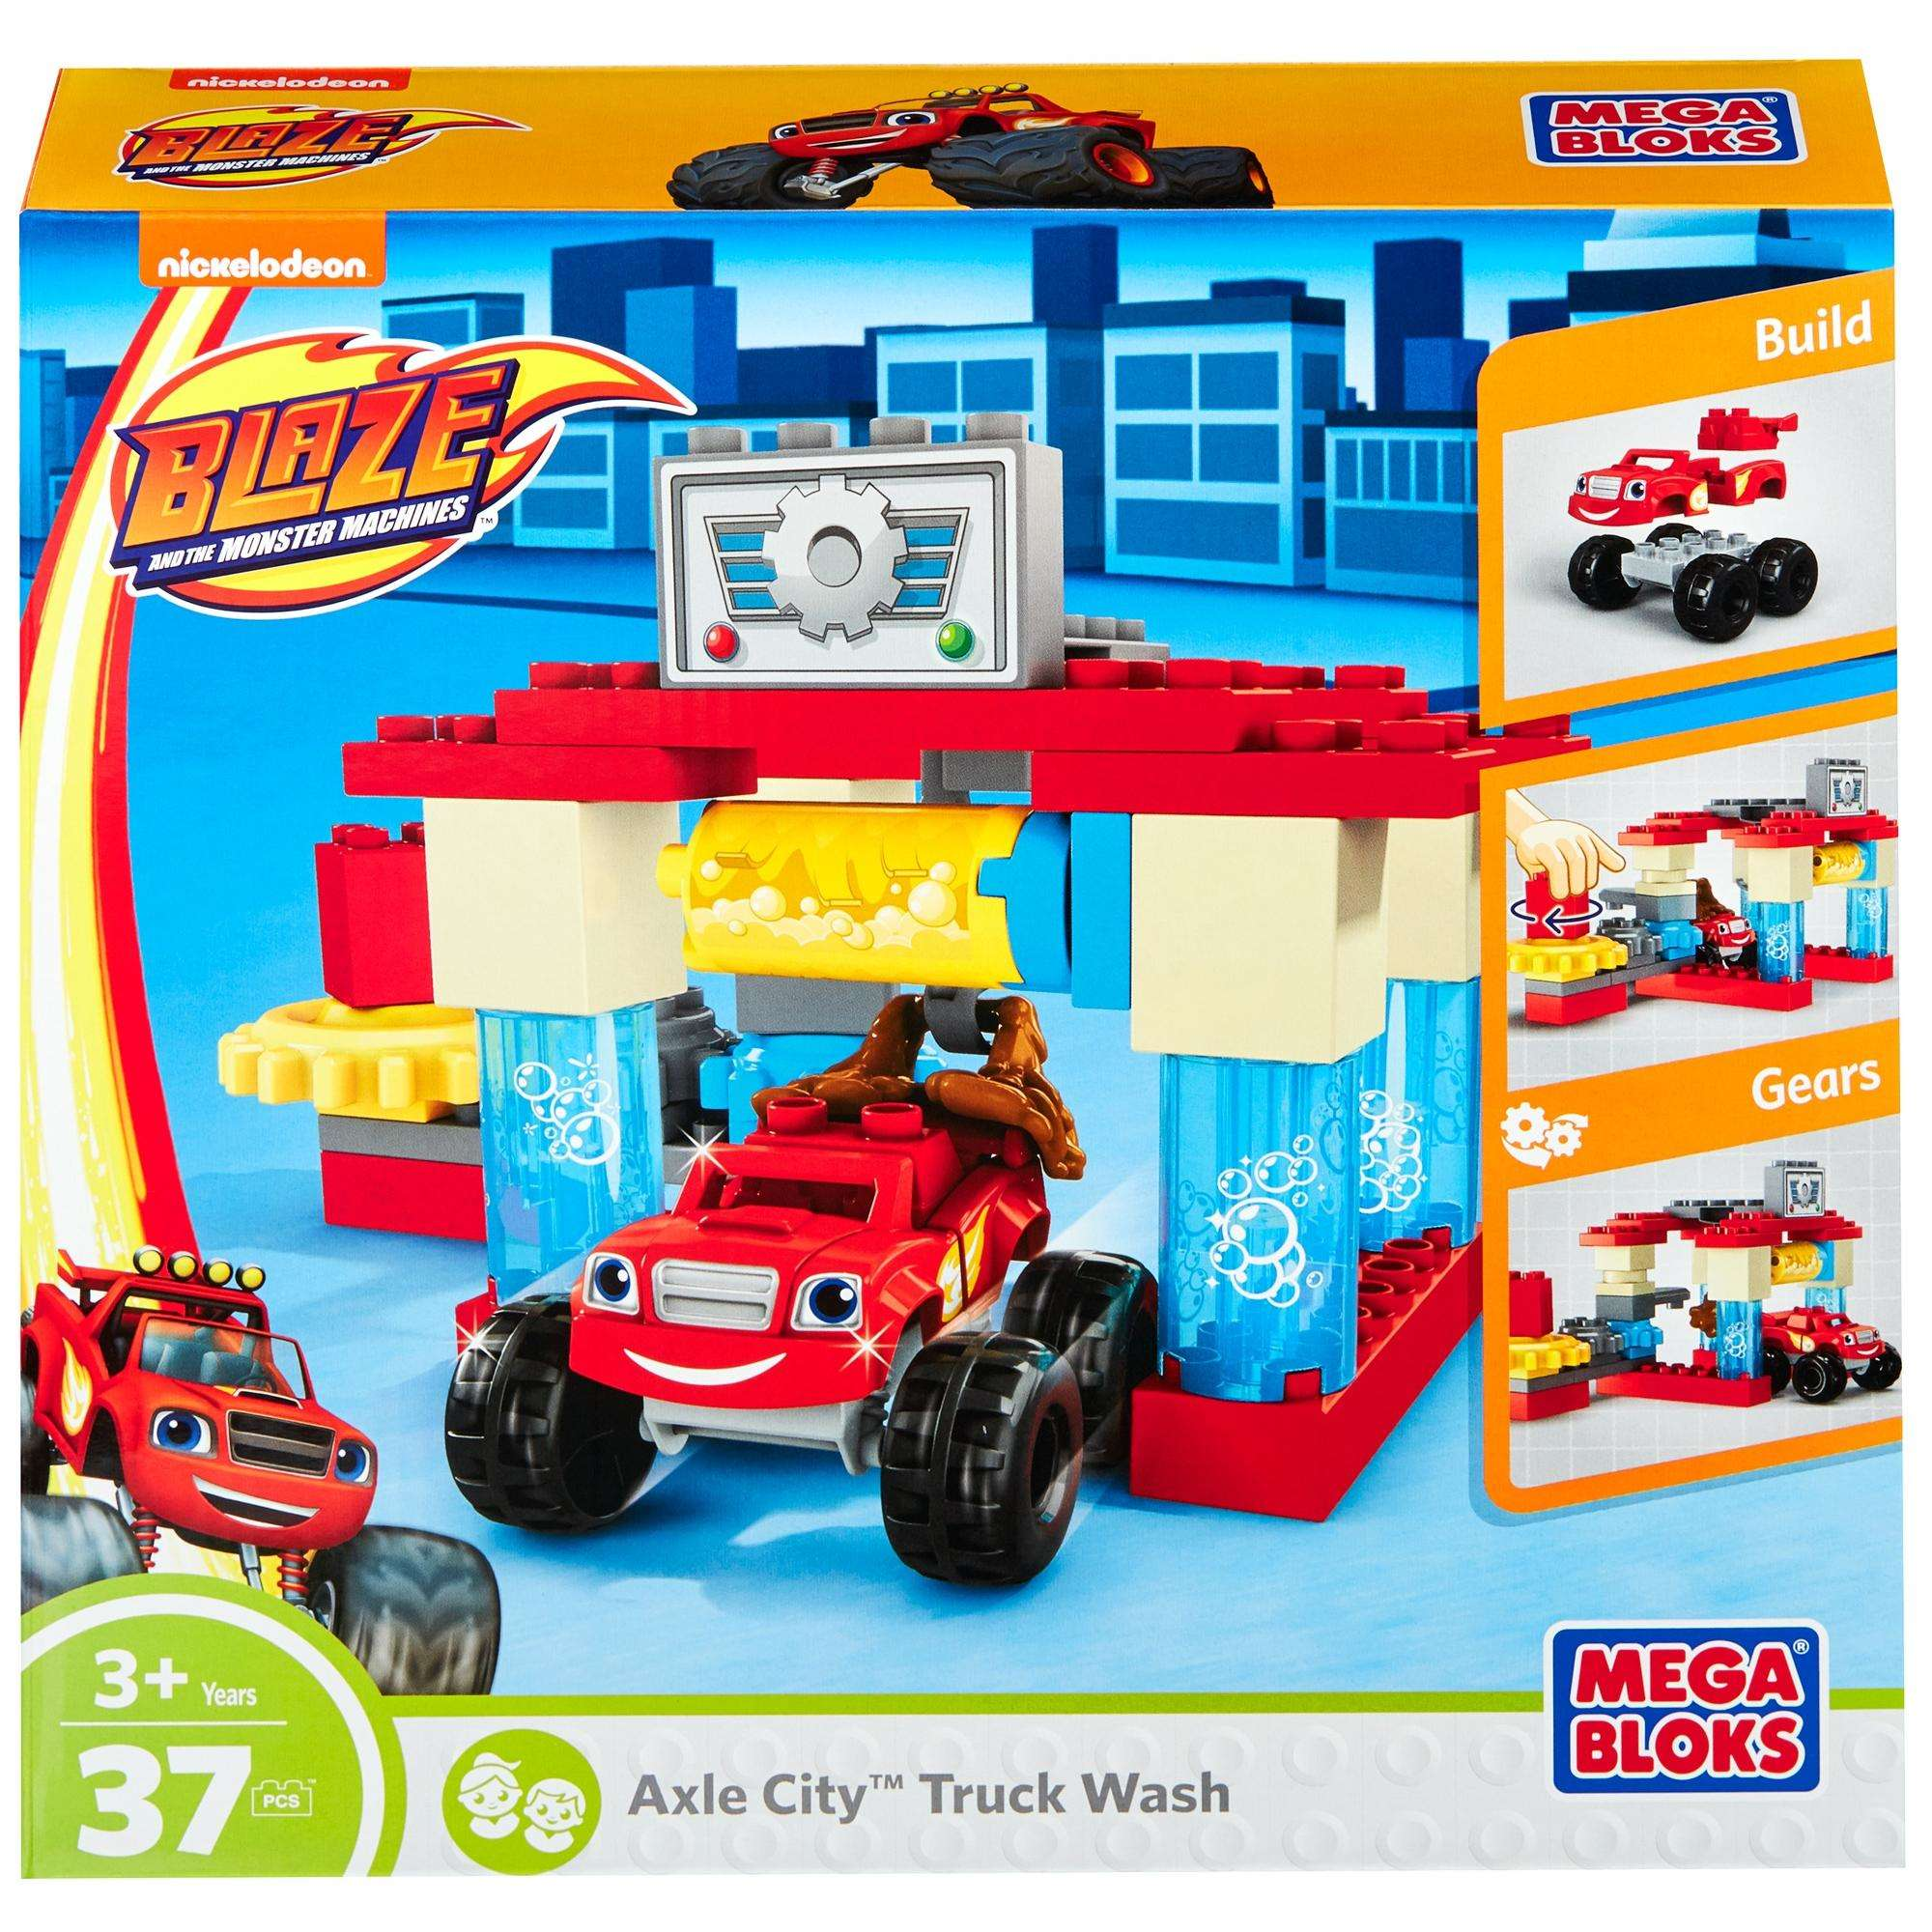 Mega Bloks Nickelodeon Blaze and the Monster Machines Axle City Truck Wash Building Set by Mega Bloks